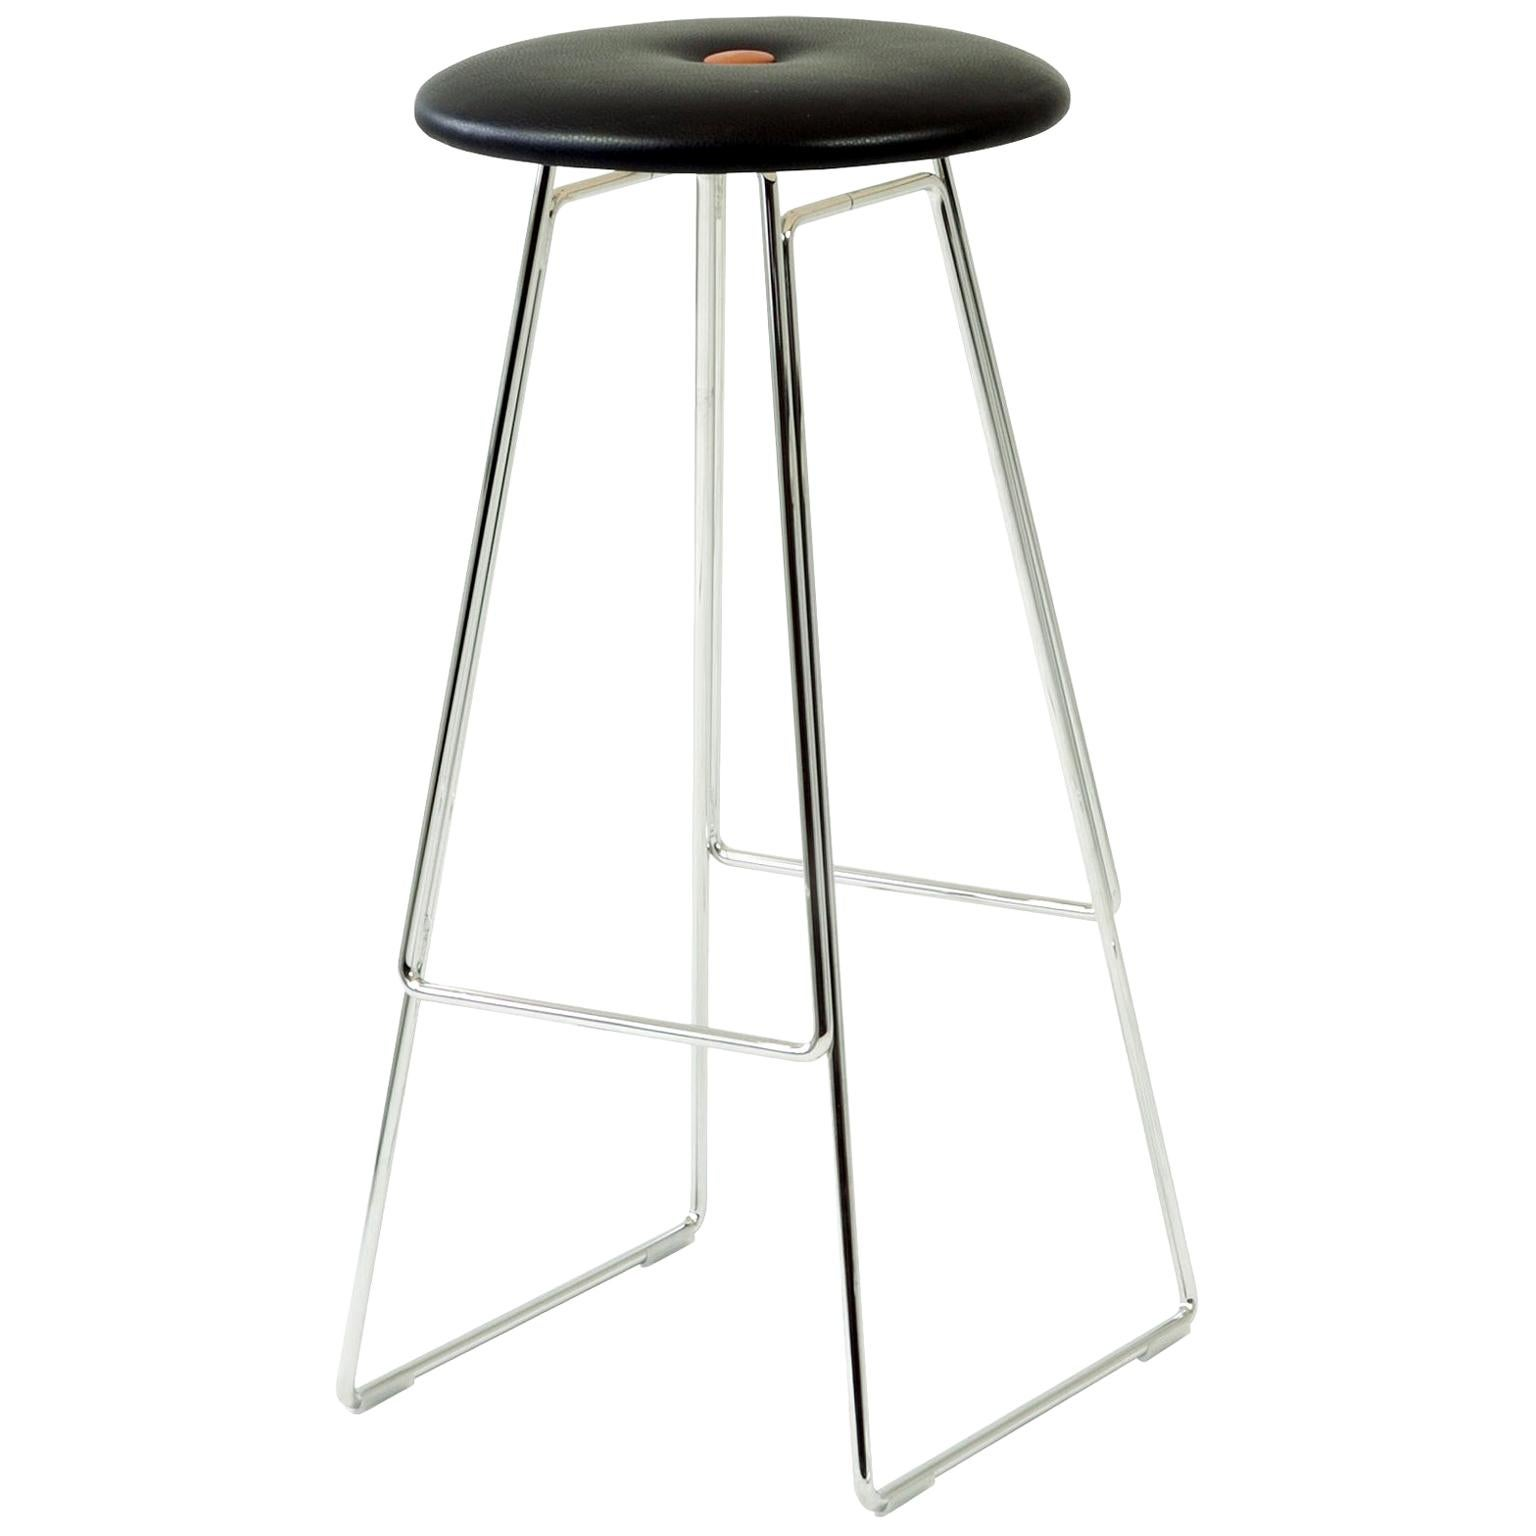 Henrik Tengler, HT 2288 Time Bar Stool by One Collection